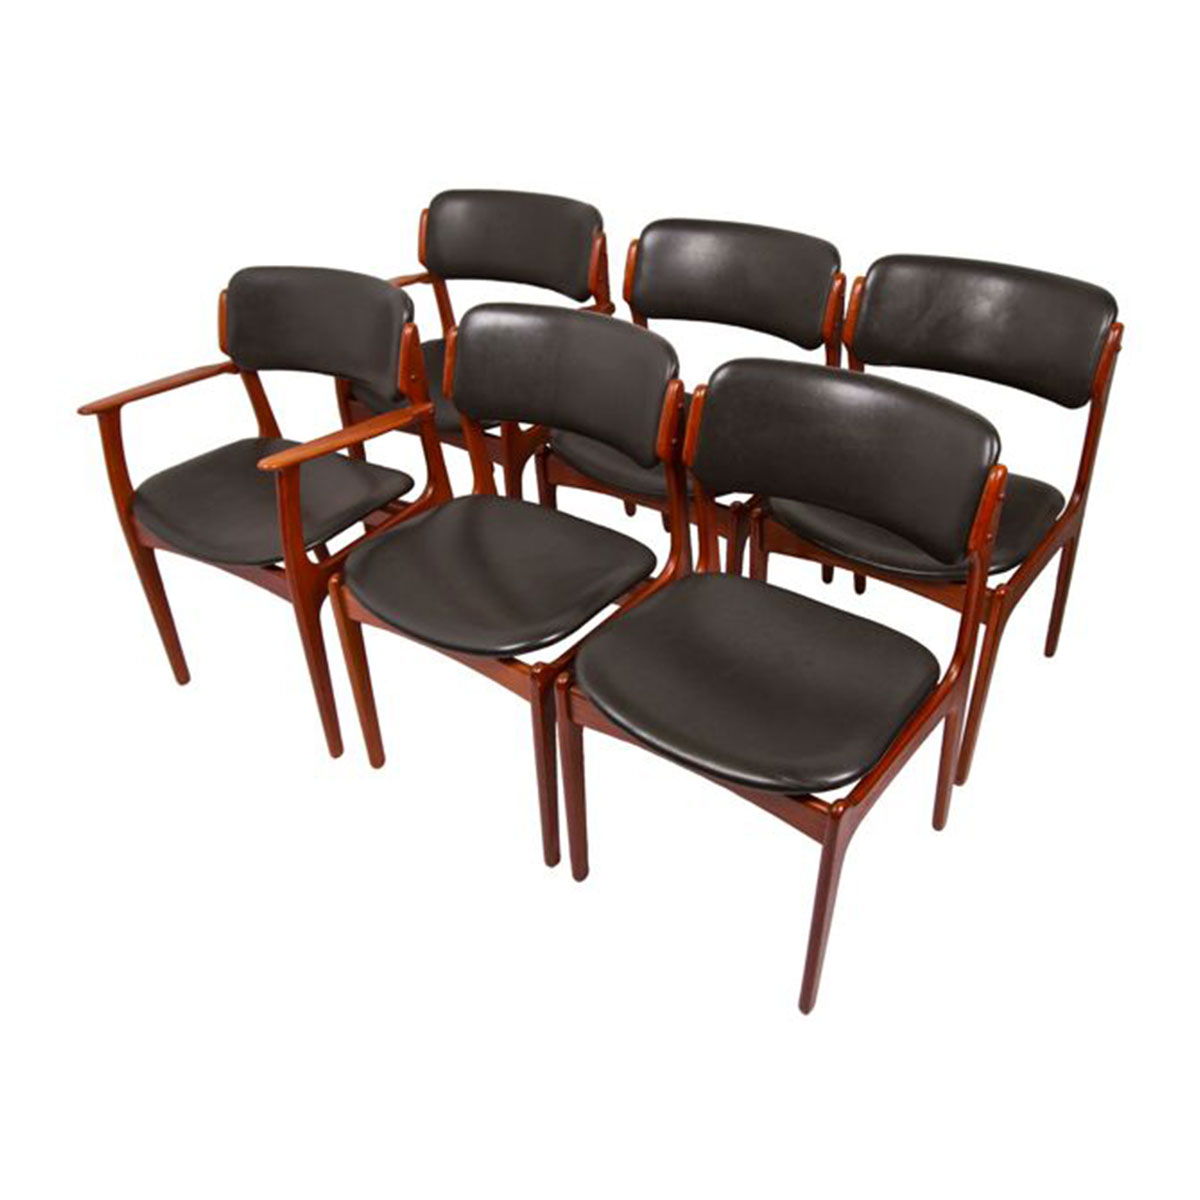 Set of 6 Erik Buch Dining Chairs